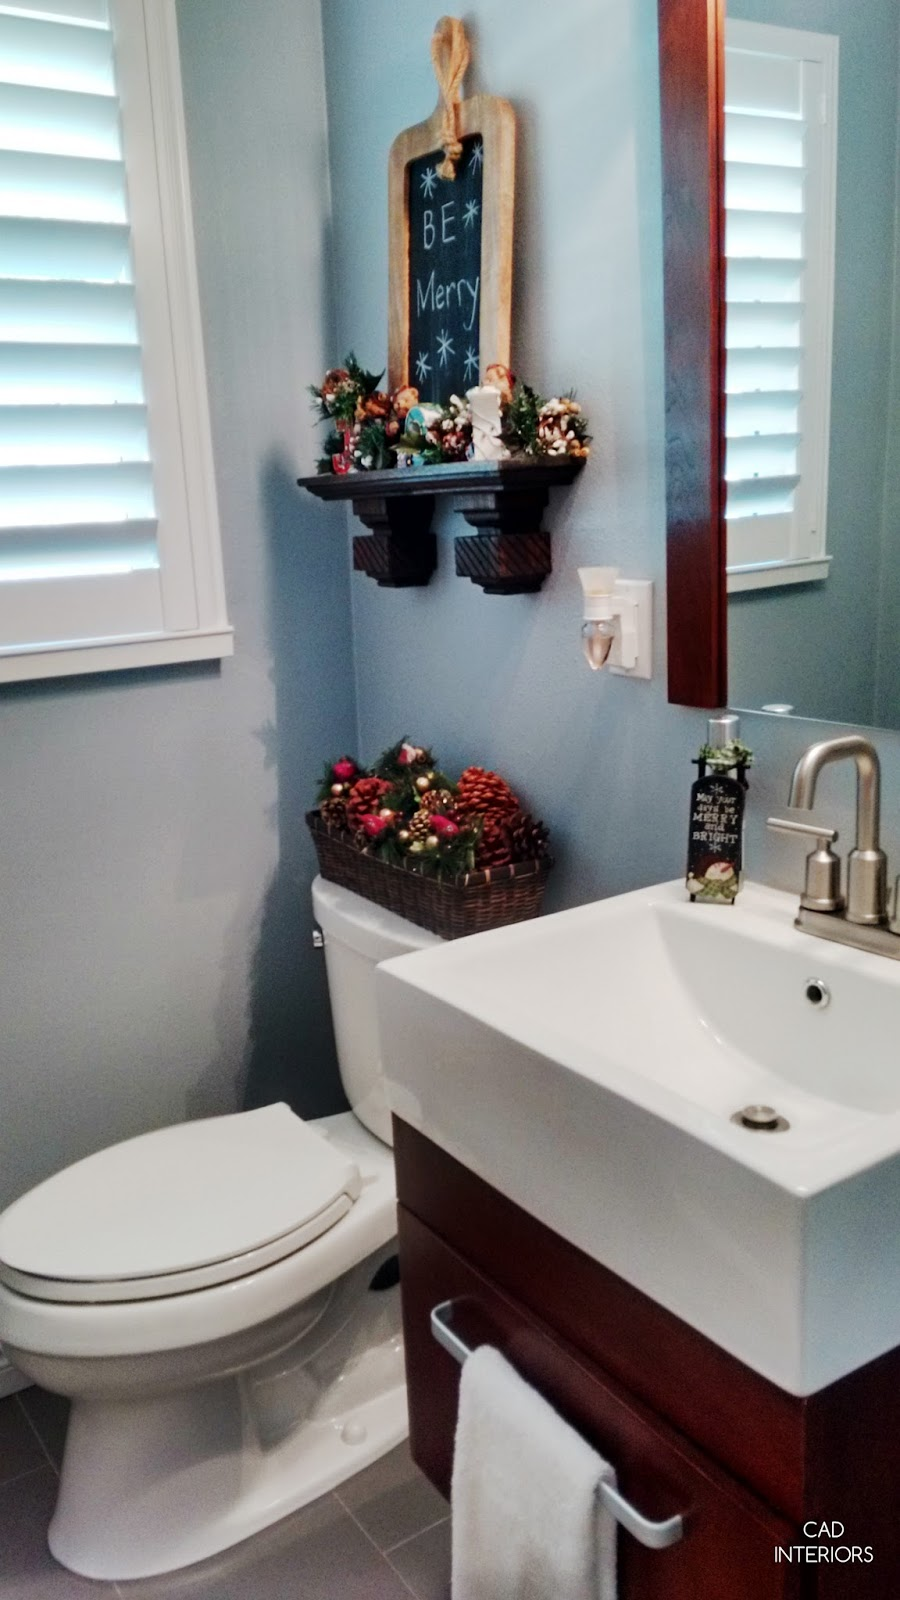 CAD INTERIORS holiday guest bathroom Christmas decorating rustic classic traditional decor